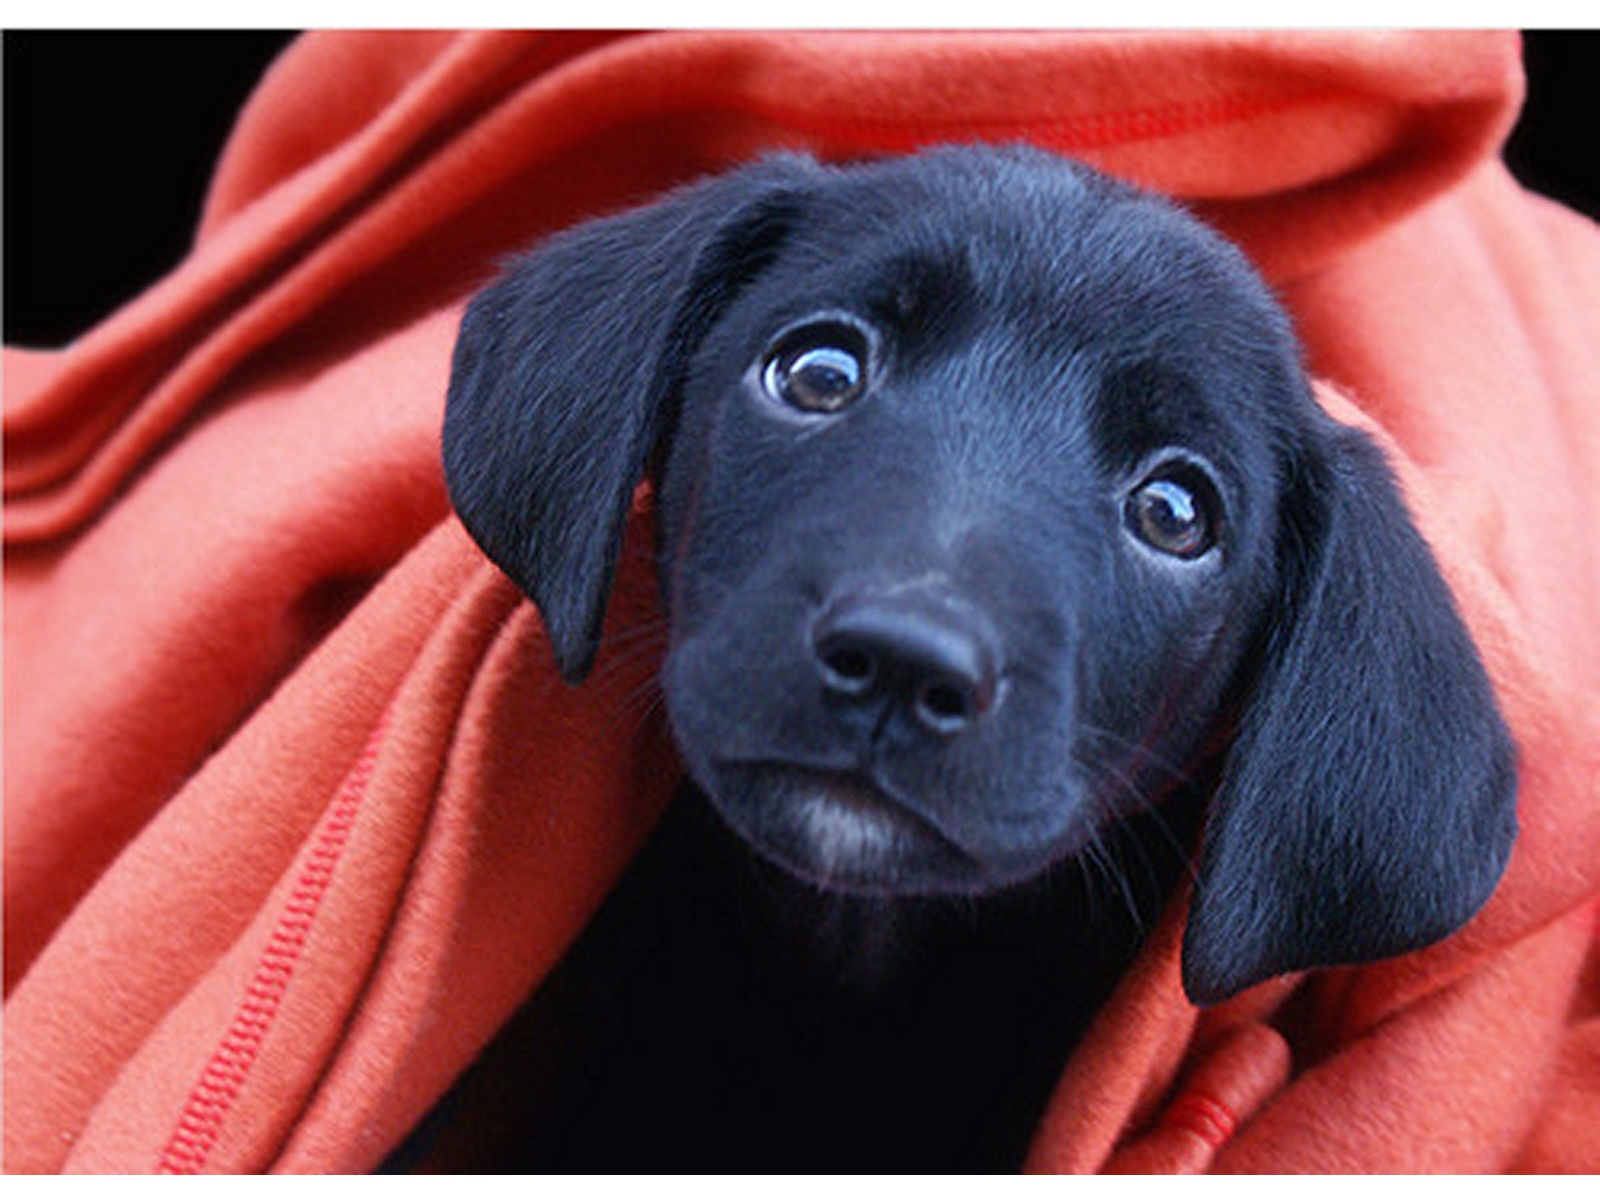 Black Lab Puppy Wallpapers   1600x1200   379587 1600x1200